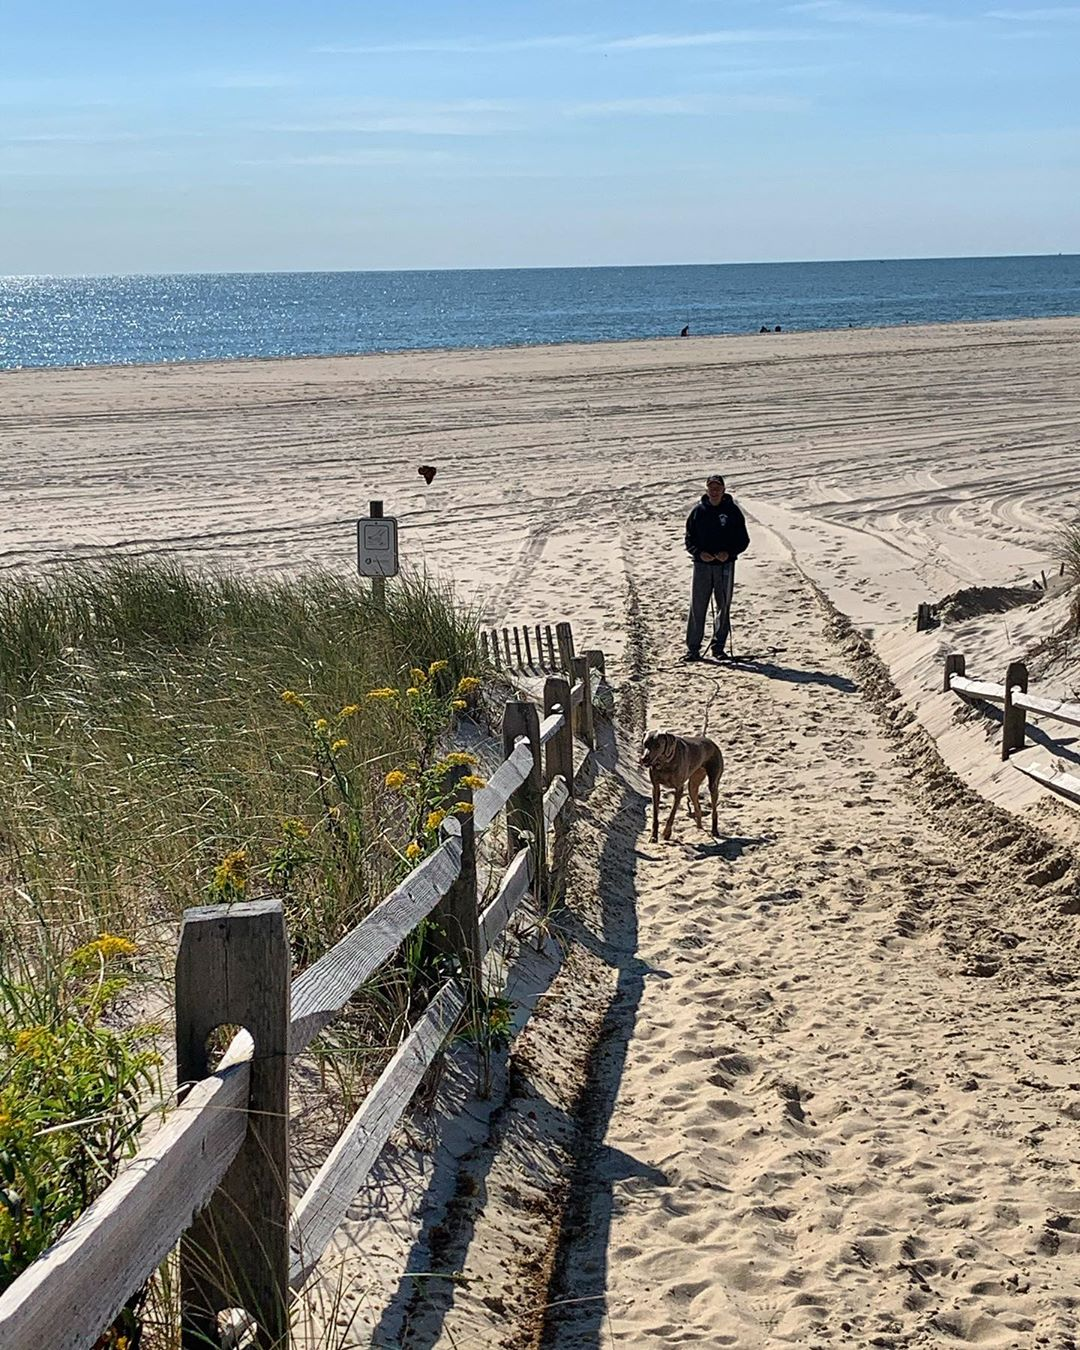 LBI Ready for the weekend! The kites will be flying Beach more, worry less          …